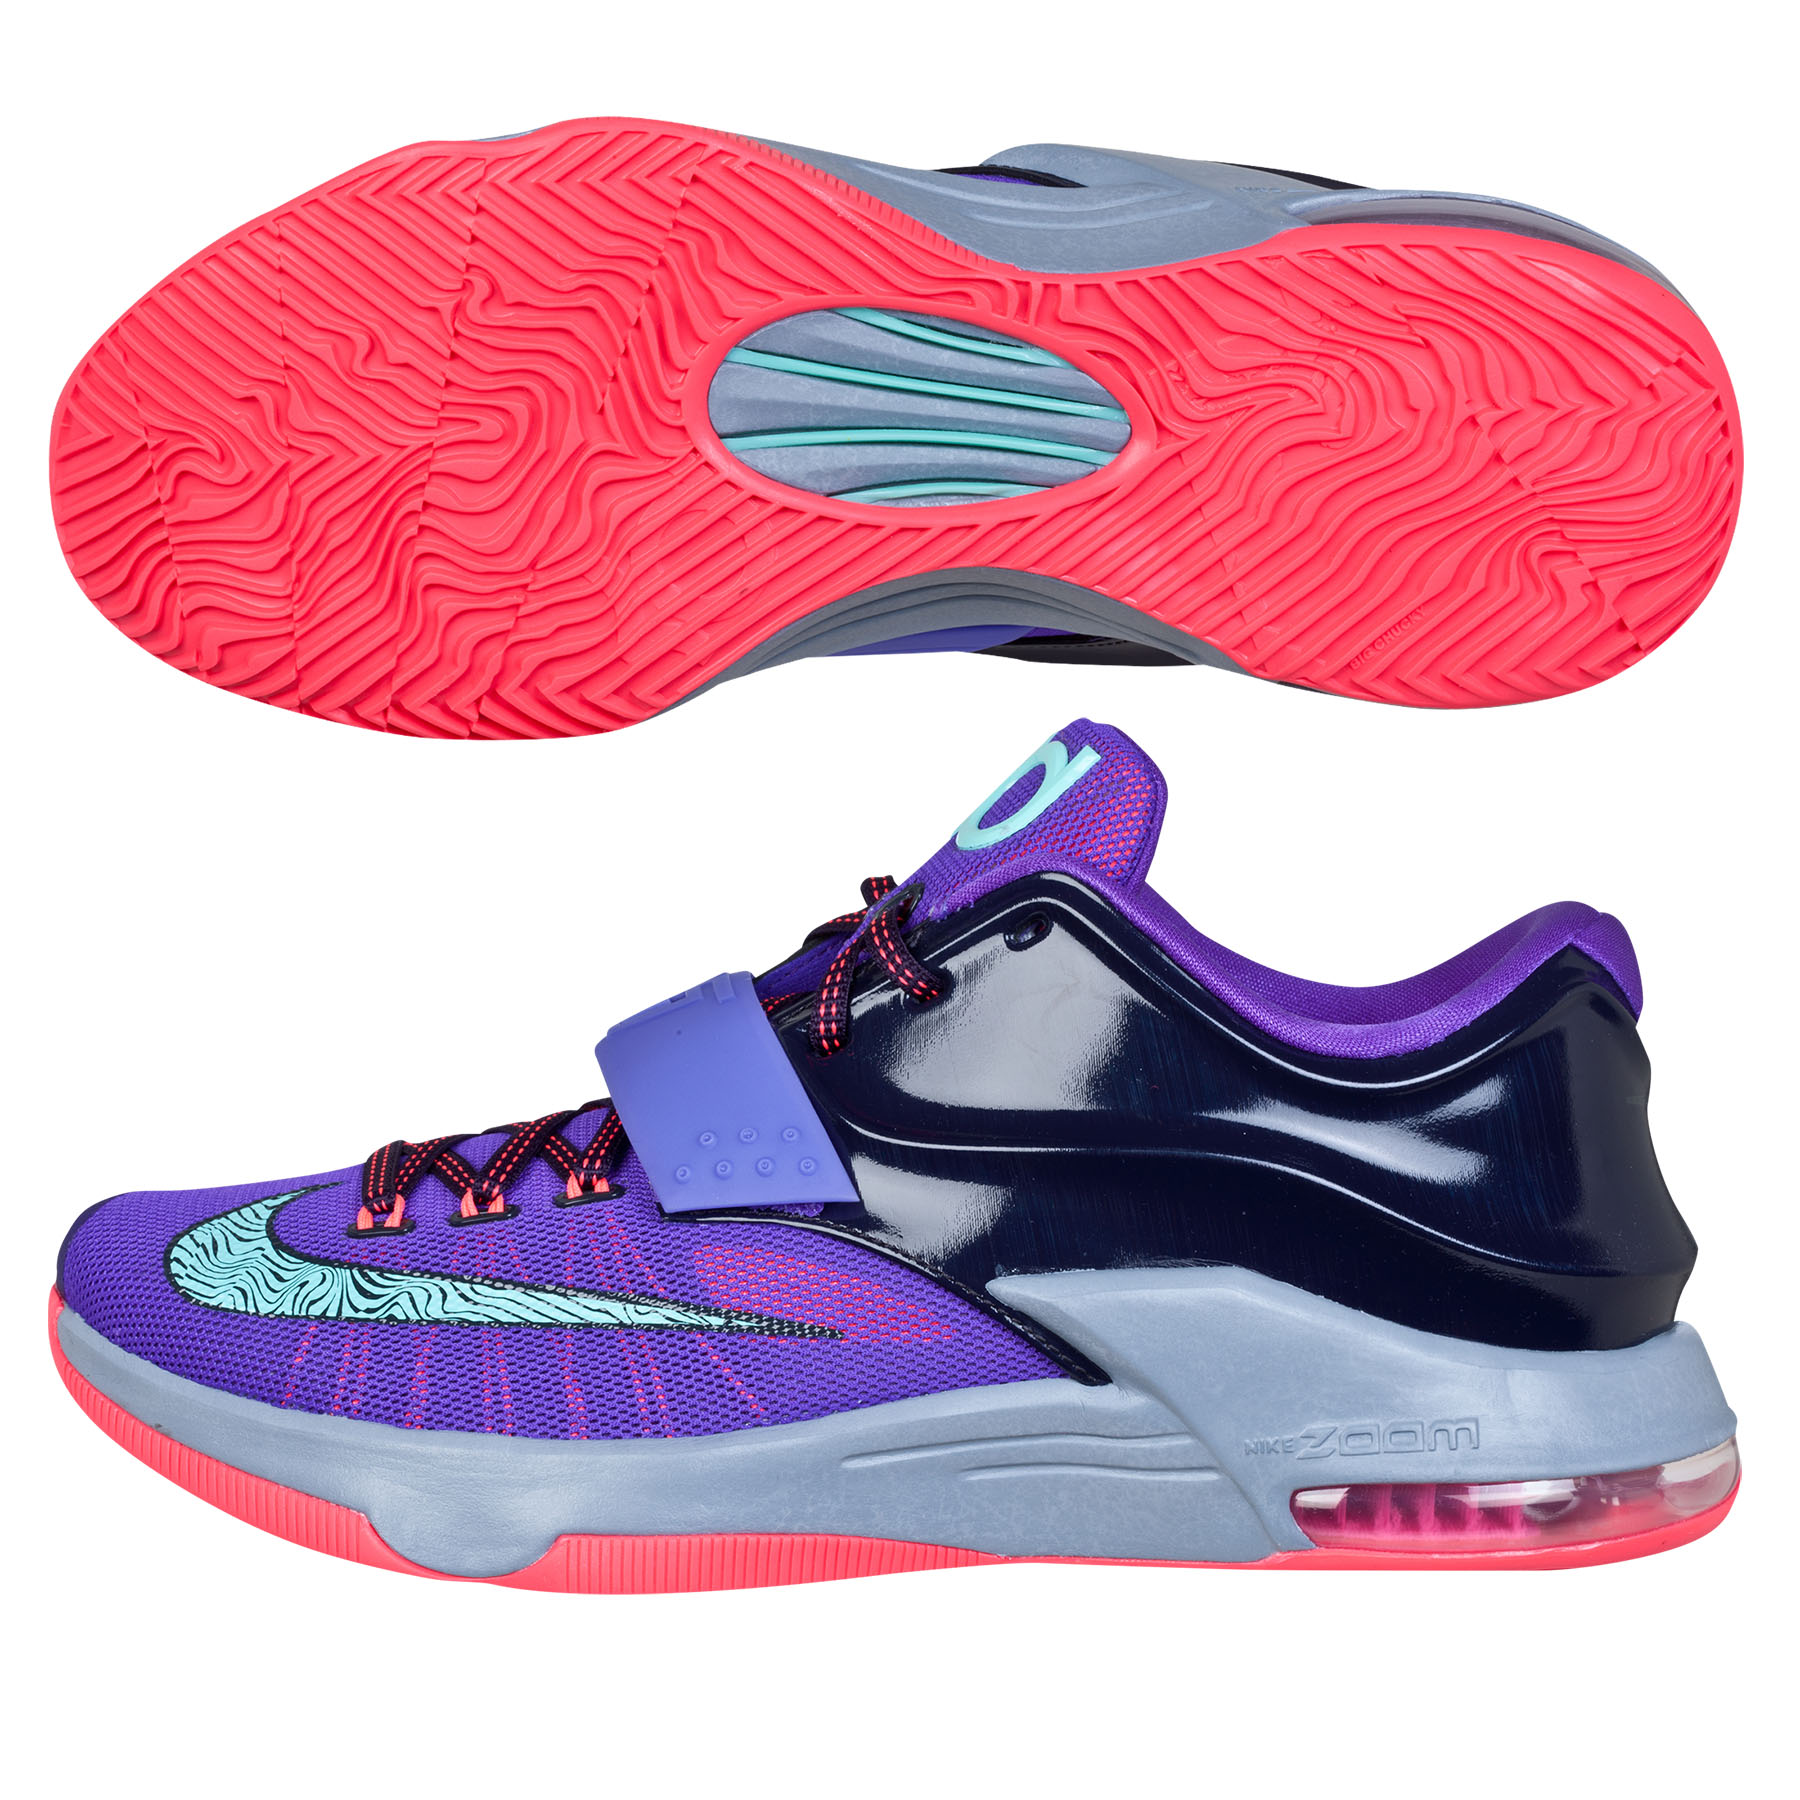 Nike KD7 Basketball Shoe - Empire State of Mind